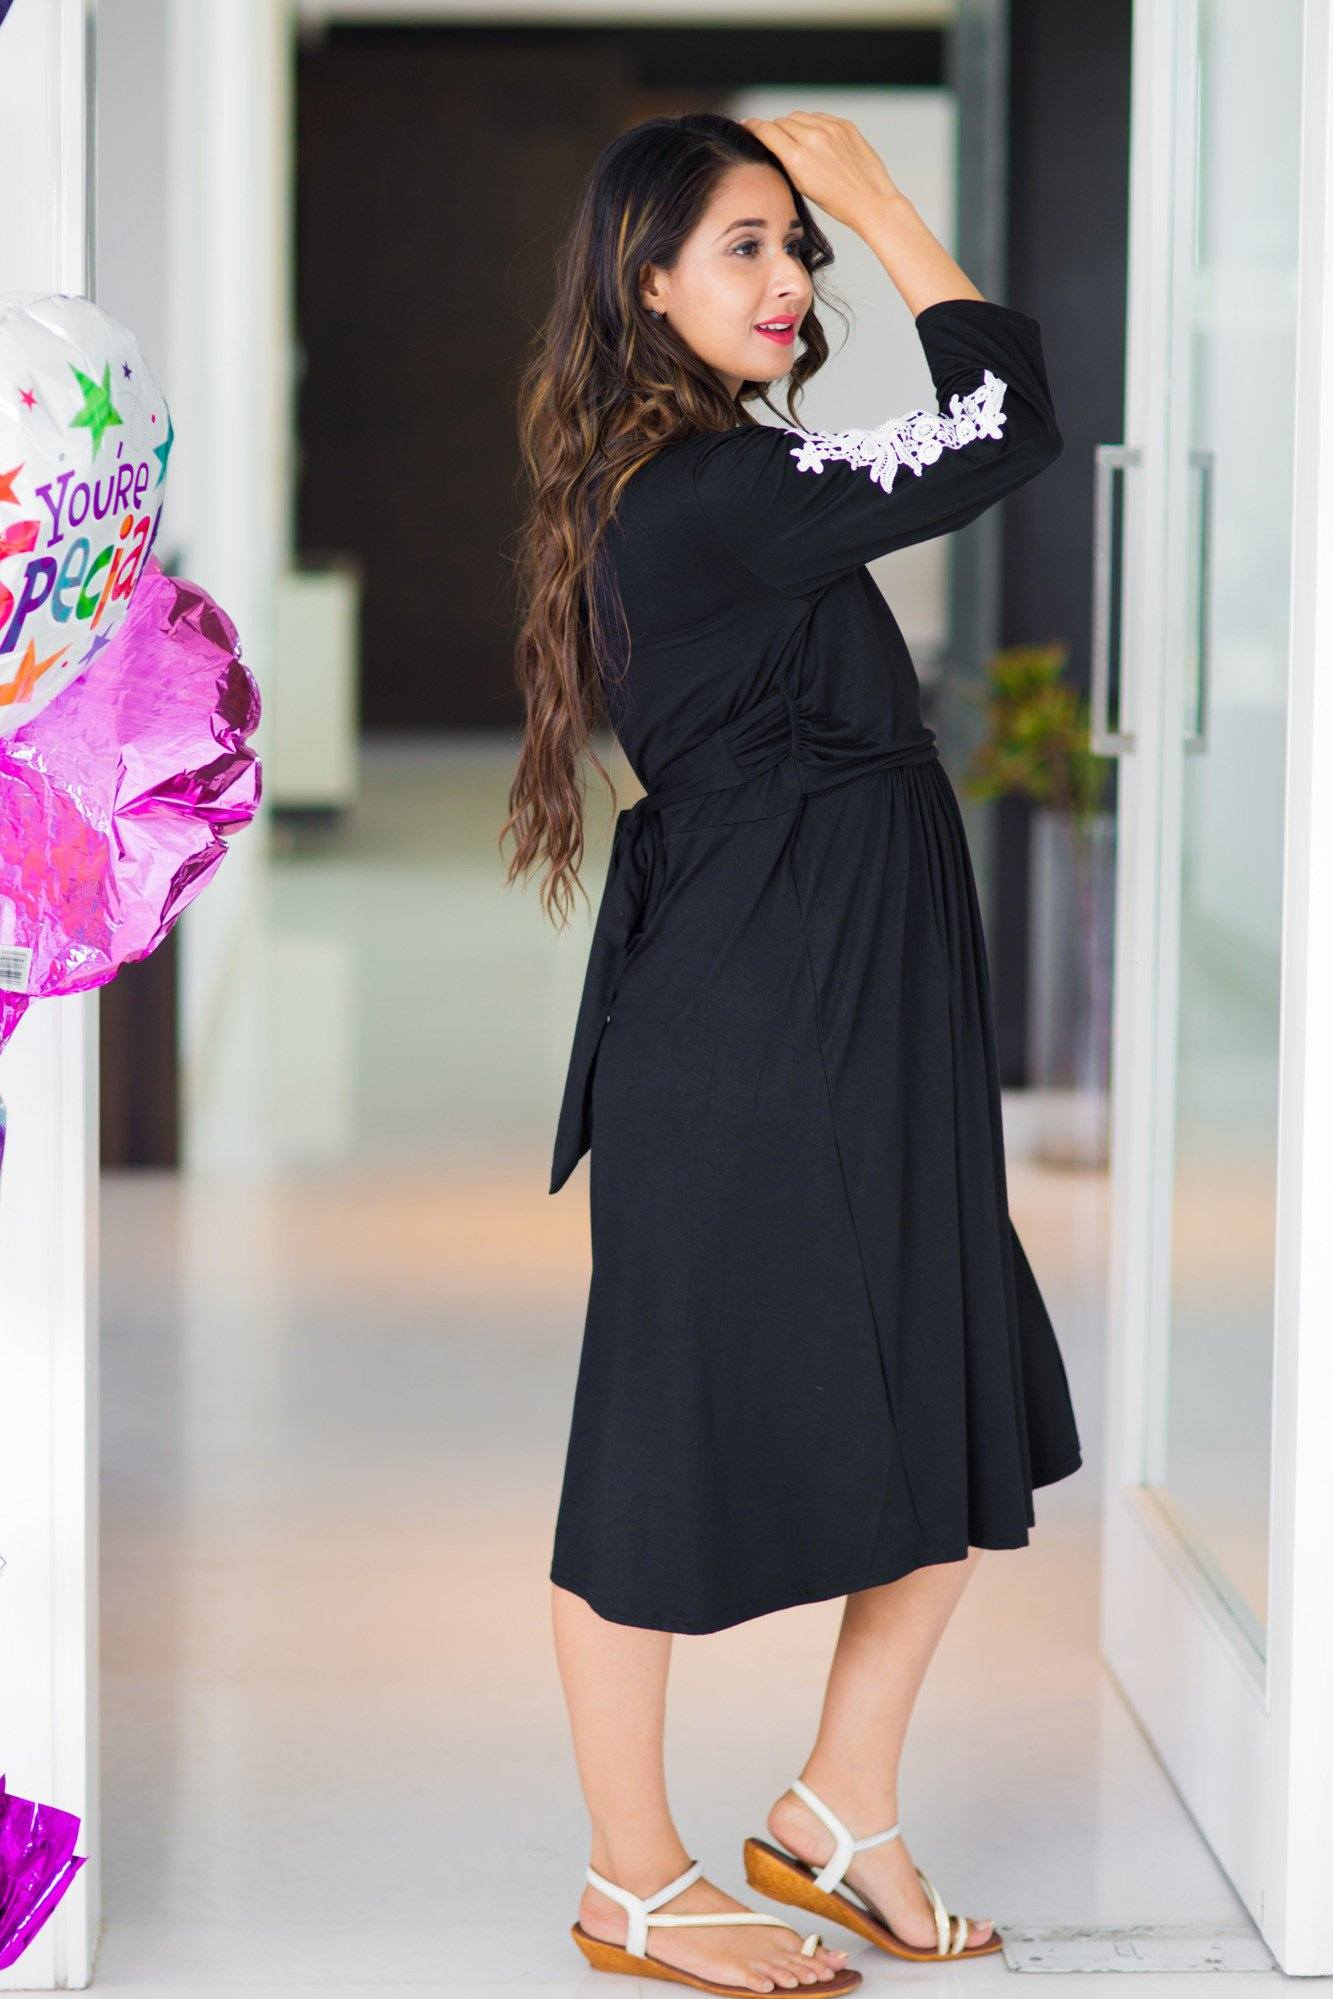 Buy online momzjoy maternity dresses pregnancy wear nursing clothes crochet black wrap tie maternity nursing dress ombrellifo Choice Image